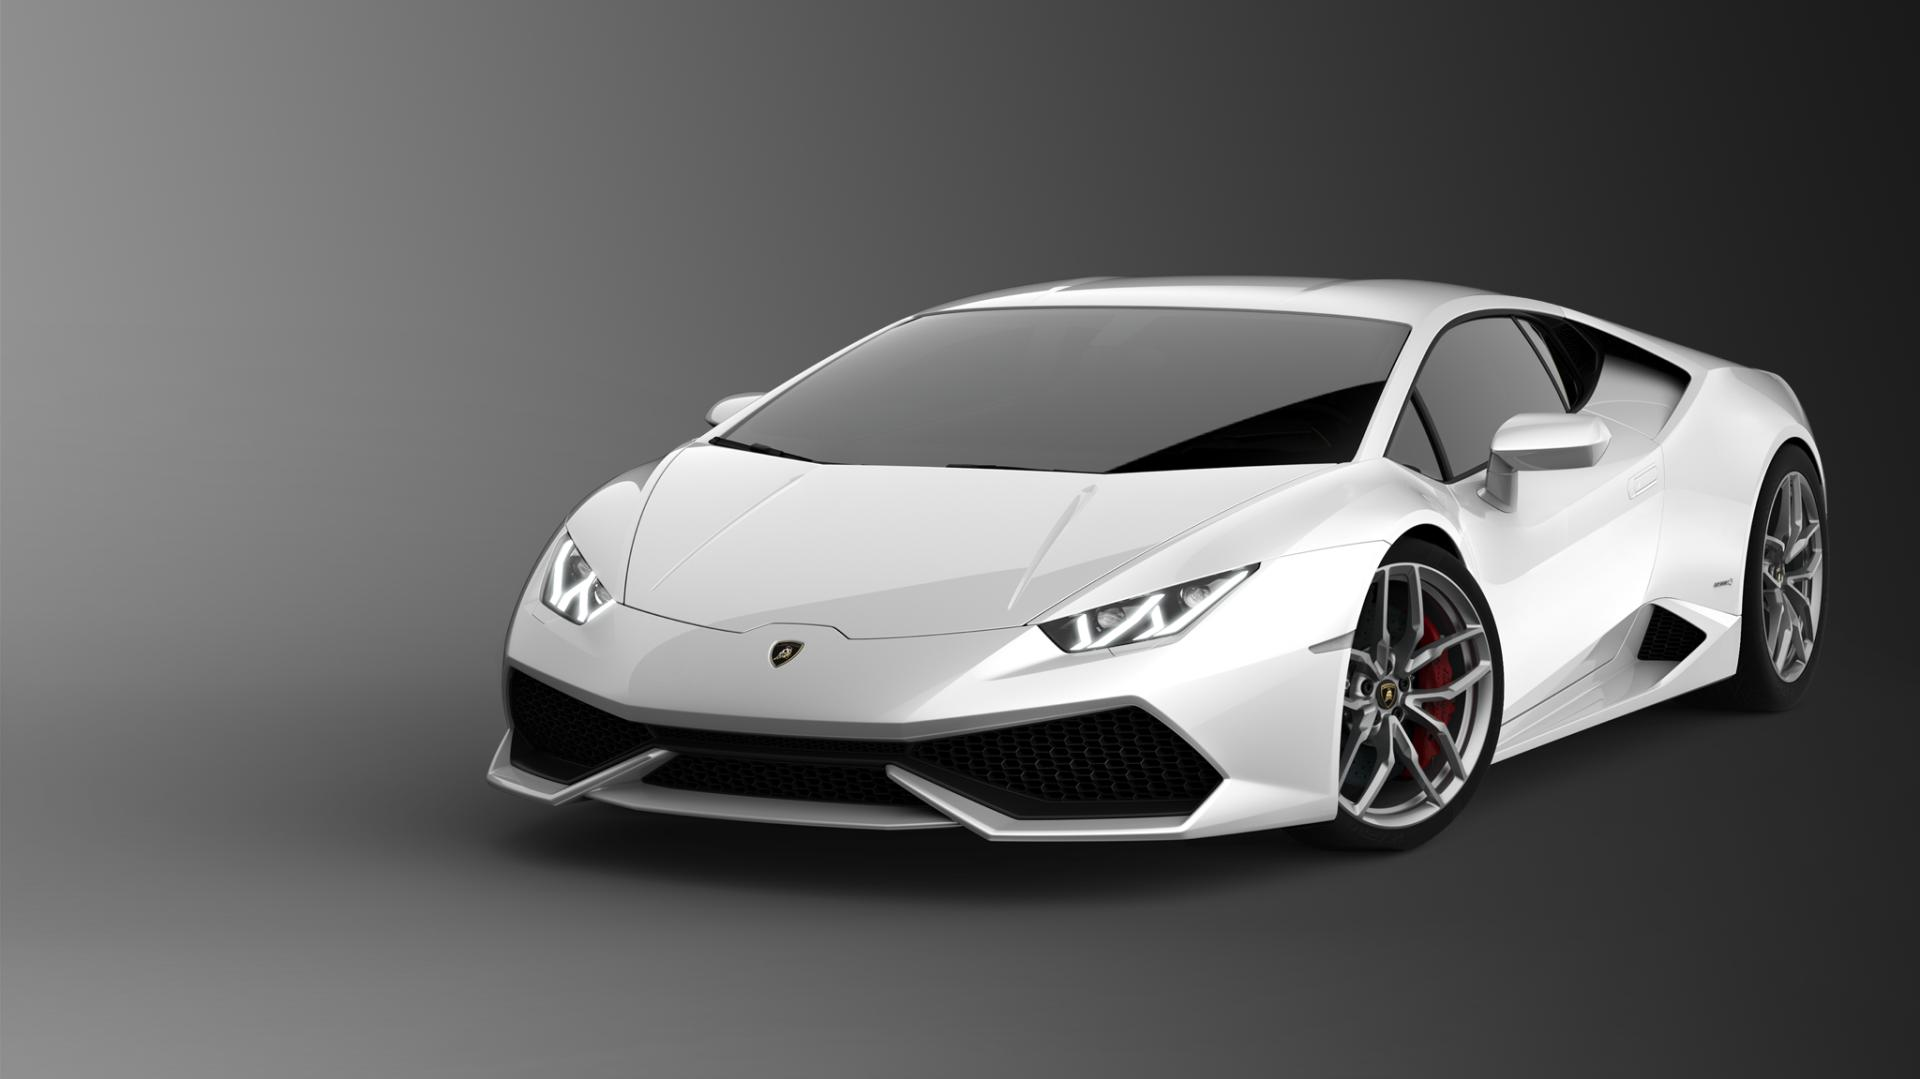 Welcome to the show of insane speed with Lamborghini 2014 model, Huracán LP610-4 #9